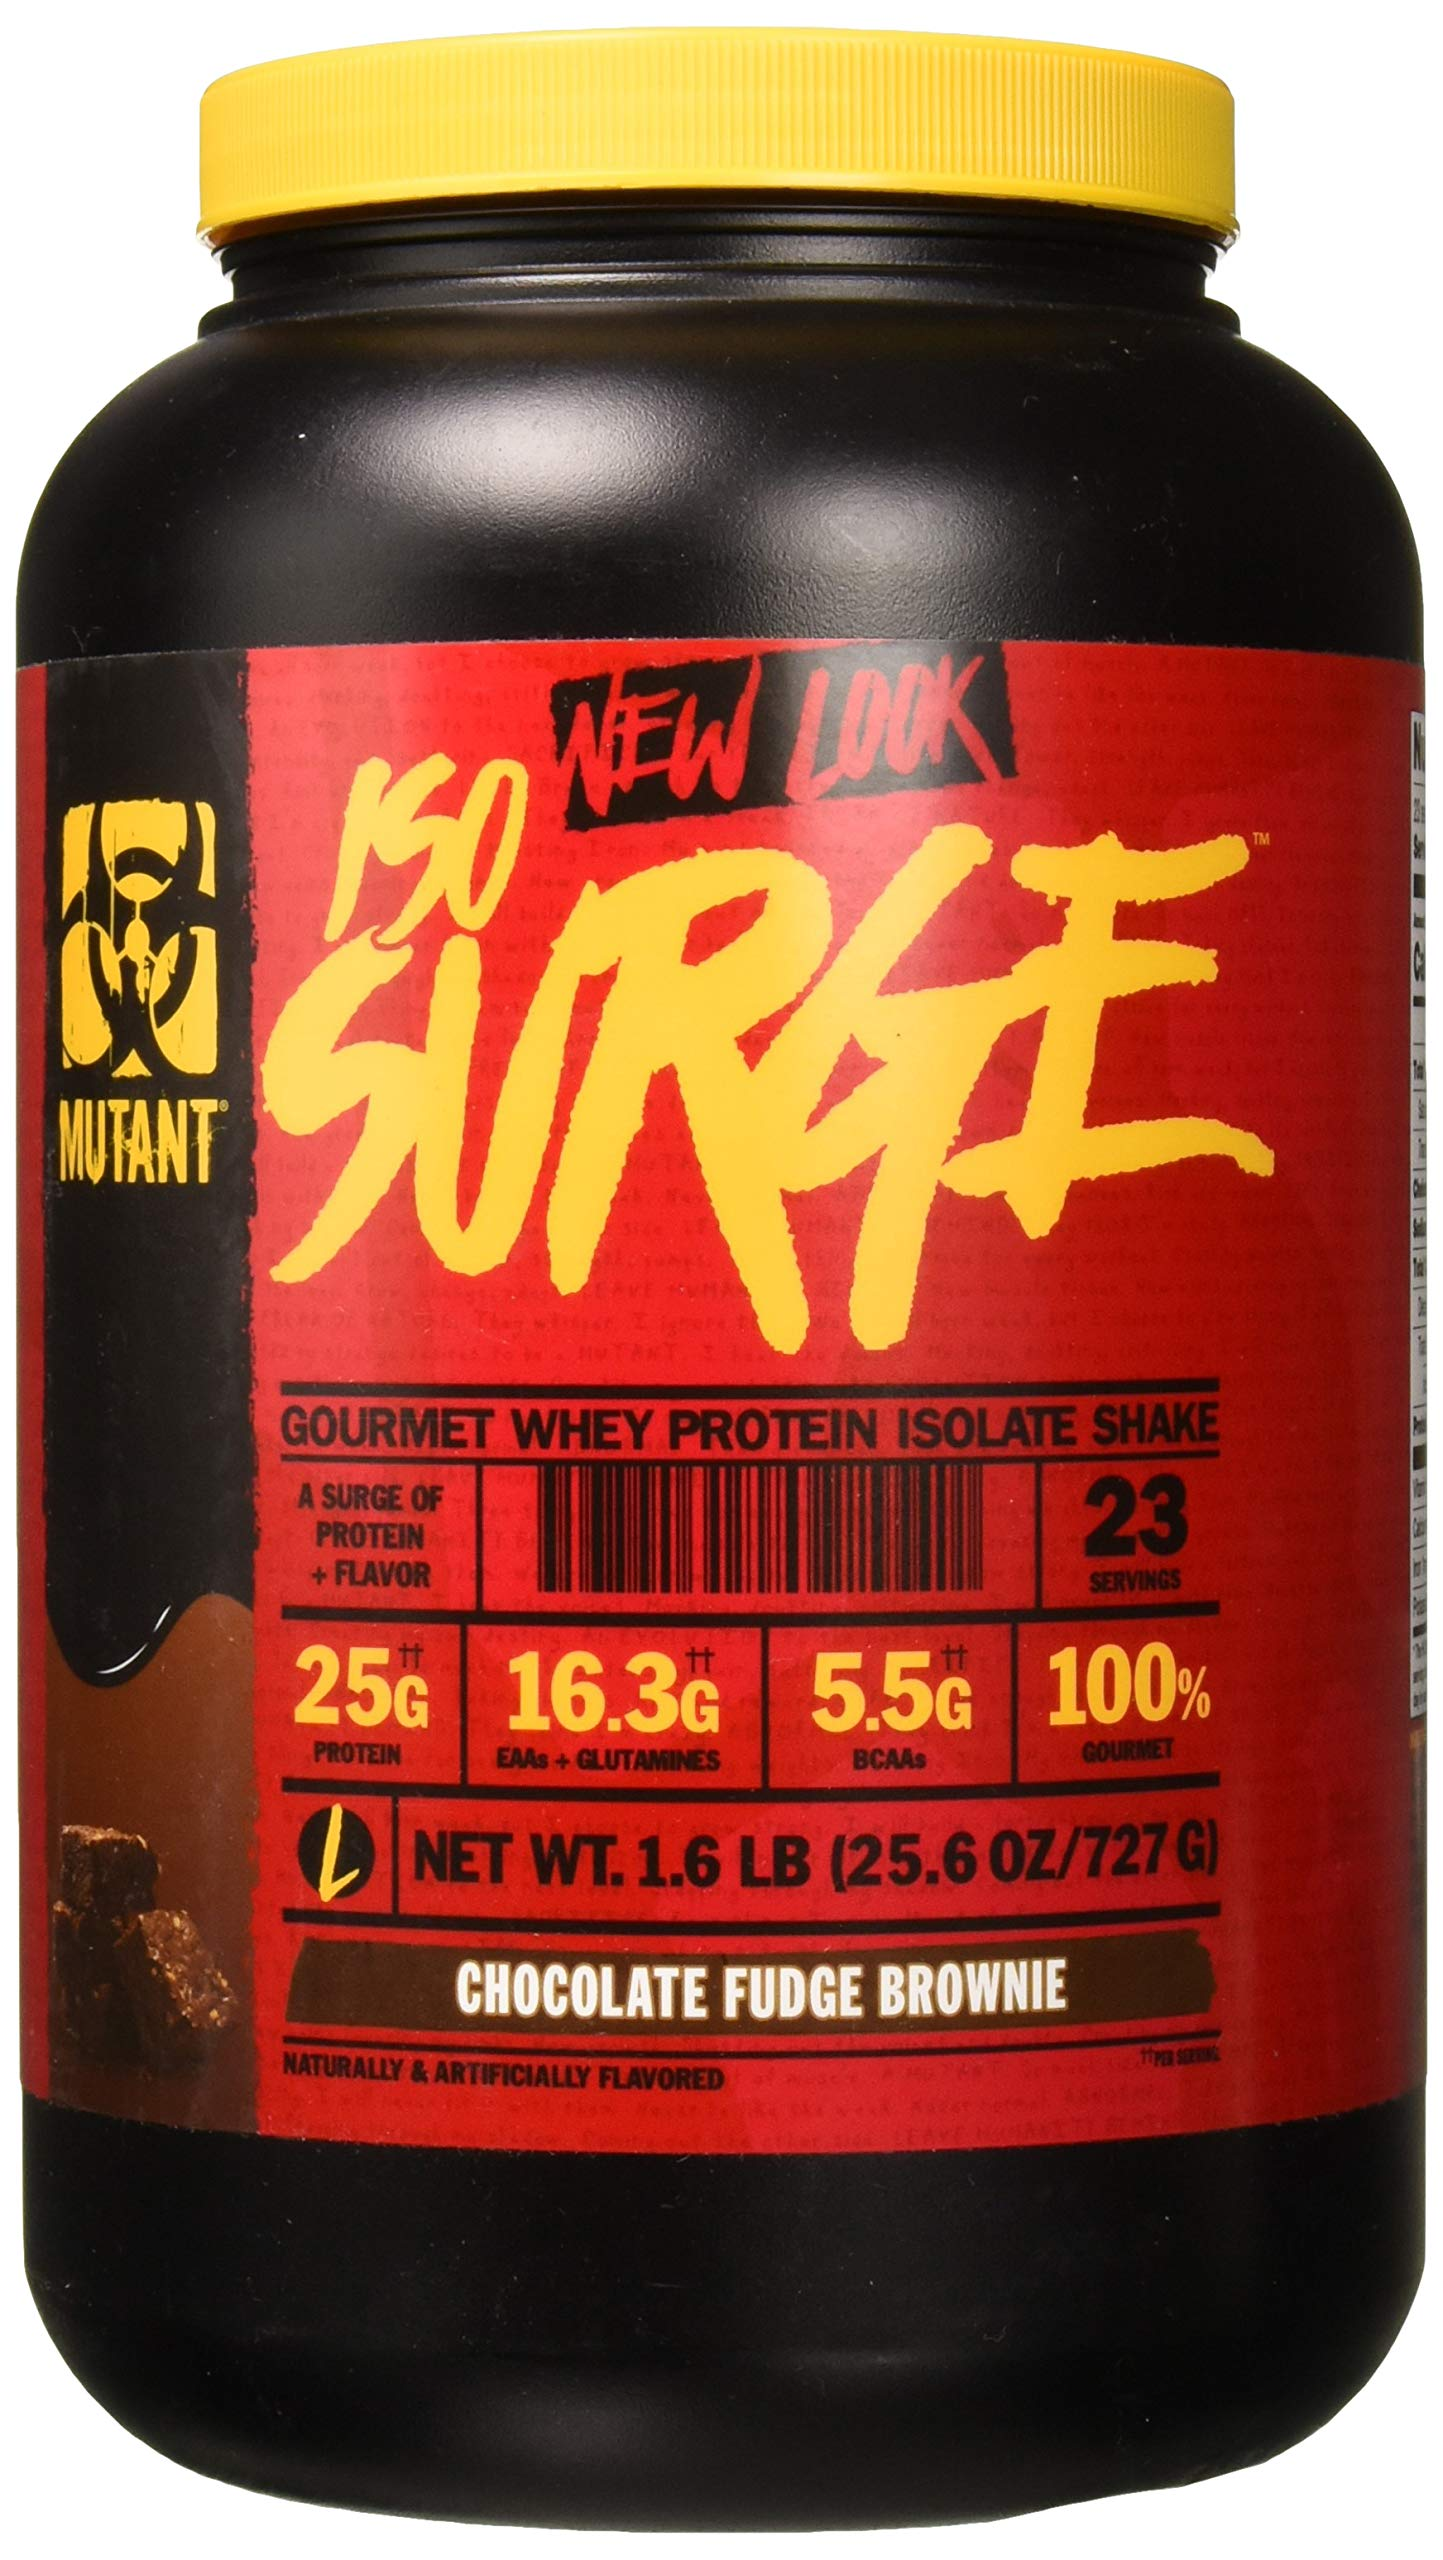 Mutant ISO Surge Whey Protein Powder Acts Fast to Help Recover, Build Muscle, Bulk and Strength, Uses Only High Quality Ingredients, 1.6 lb - Chocolate Fudge Brownie